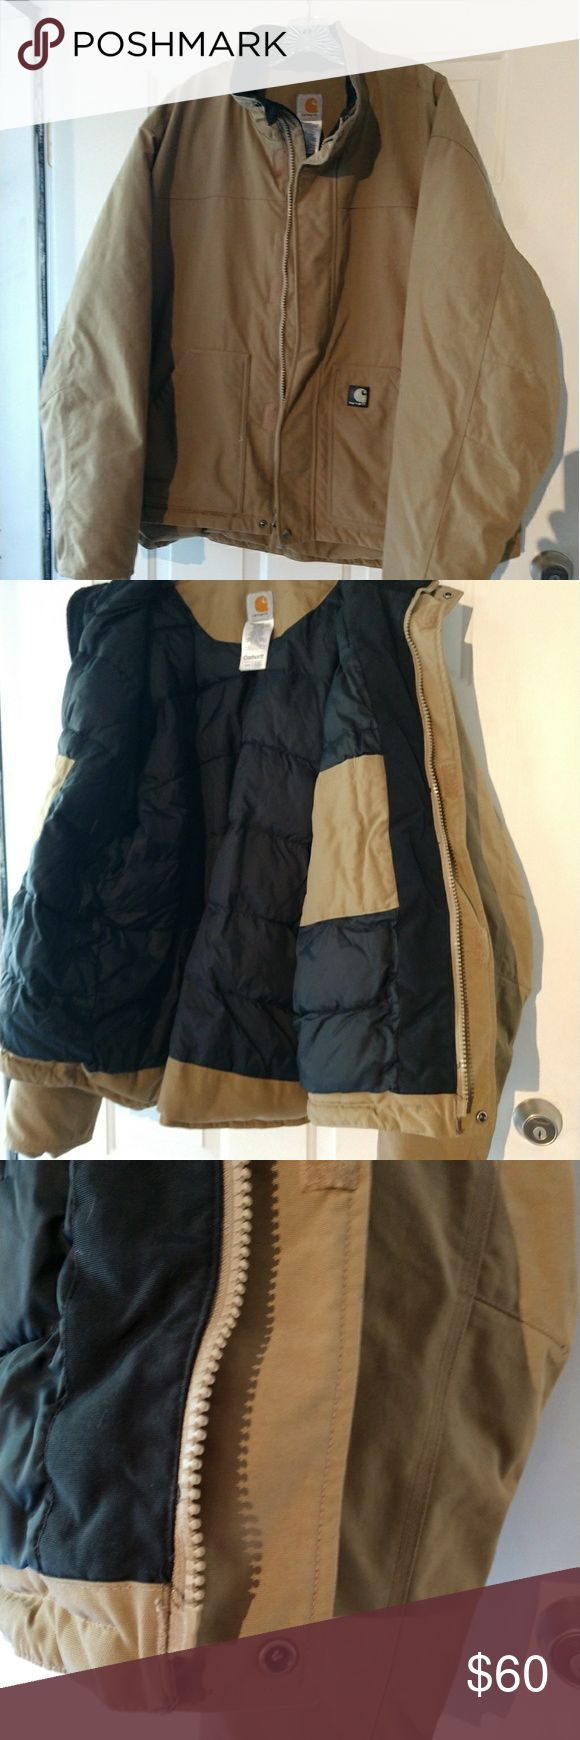 Carhartt Jacket. SALE This jacket is in very very good used condition.  Gently used condition. Perfect for Winter. Very warm. Not a light jacket. Priced to sell. Carhartt Jackets & Coats